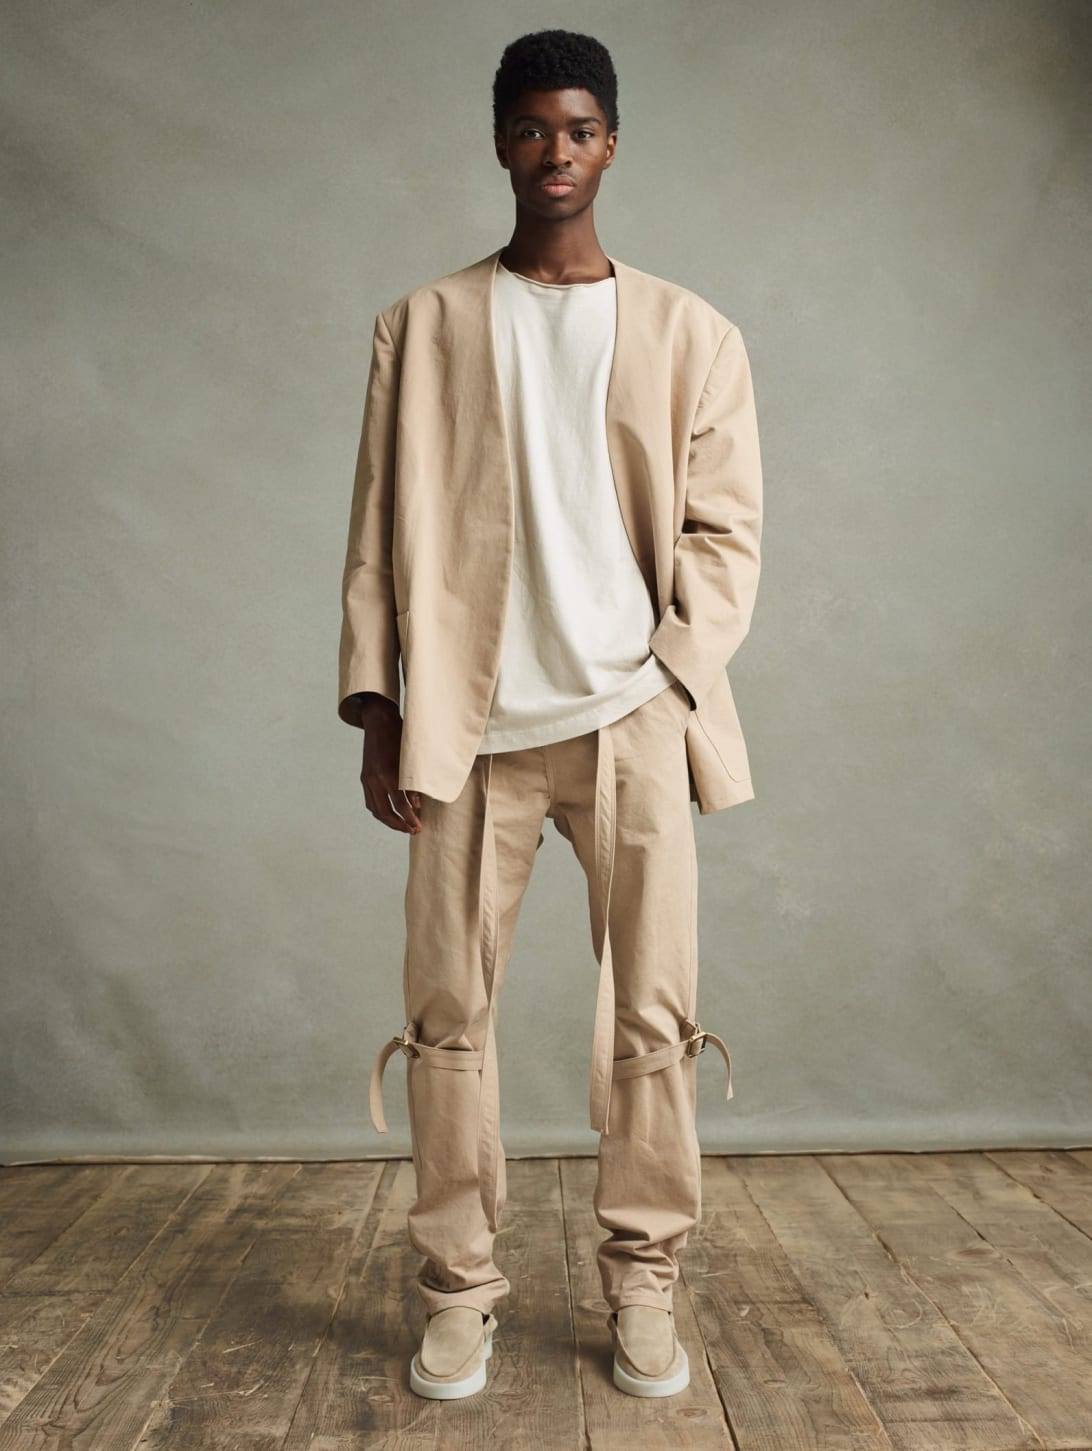 Seventh Collection Lookbook Look 27